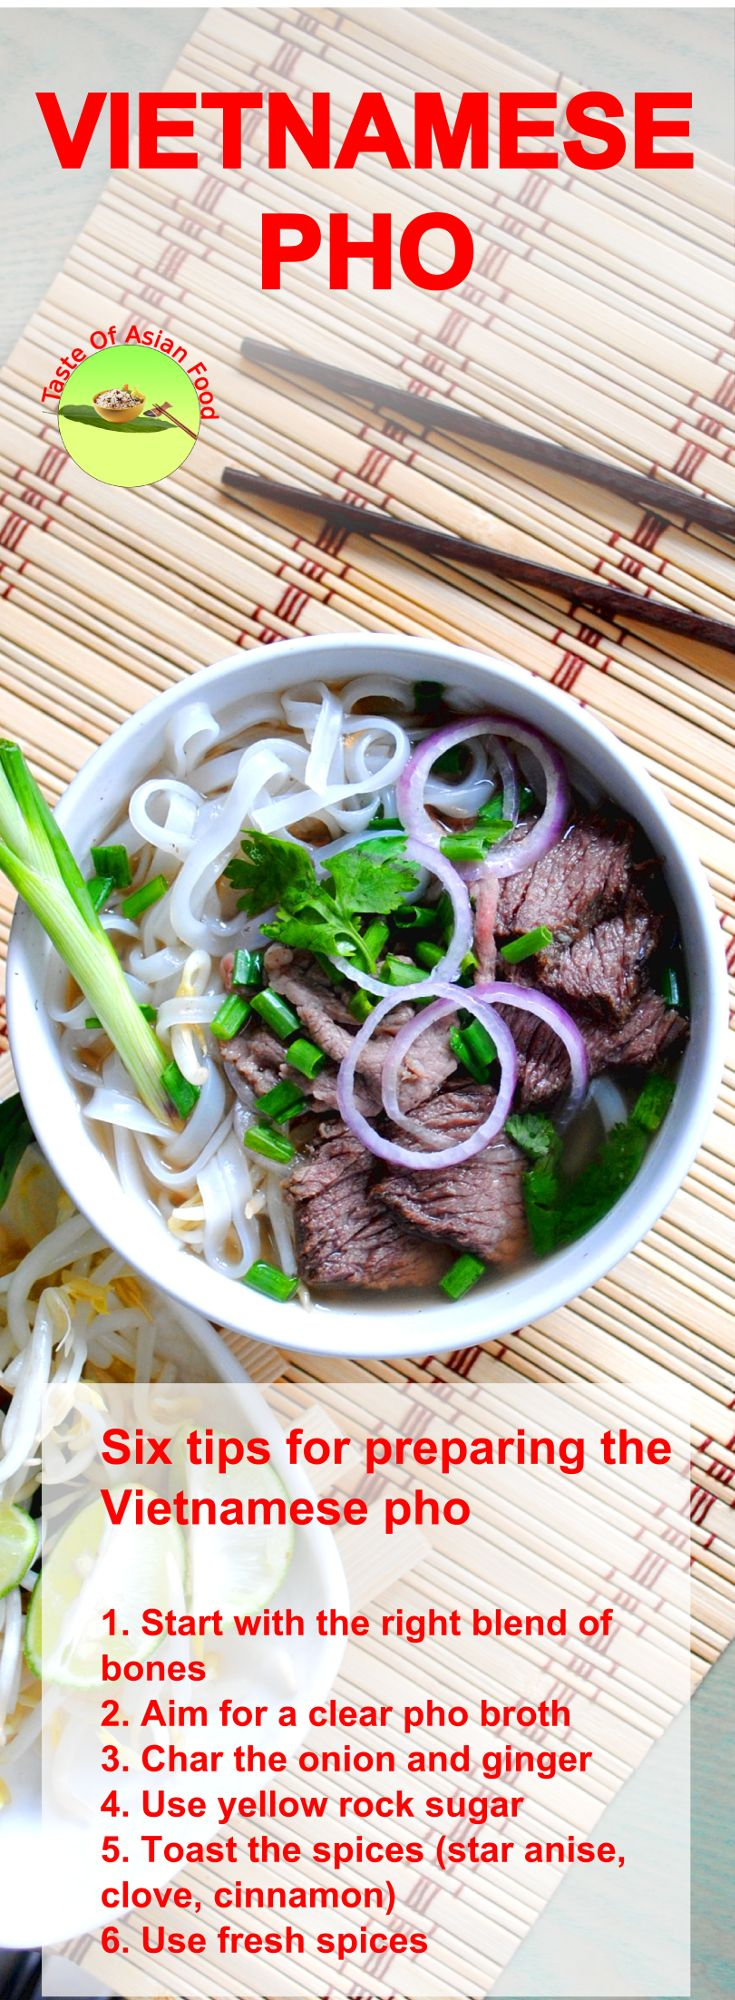 Six tips for preparing the Vietnamese pho 1. Start with the right blend of bones 2. Aim for a clear pho broth 3. Char the onion and ginger 4. Use yellow rock sugar 5. Toast the spices (star anise, clove, cinnamon) 6. Use fresh spices 7. Simmer (Be patient) 8. Always serve Vietnamese pho hot 9. Use rice noodles for Vietnamese pho